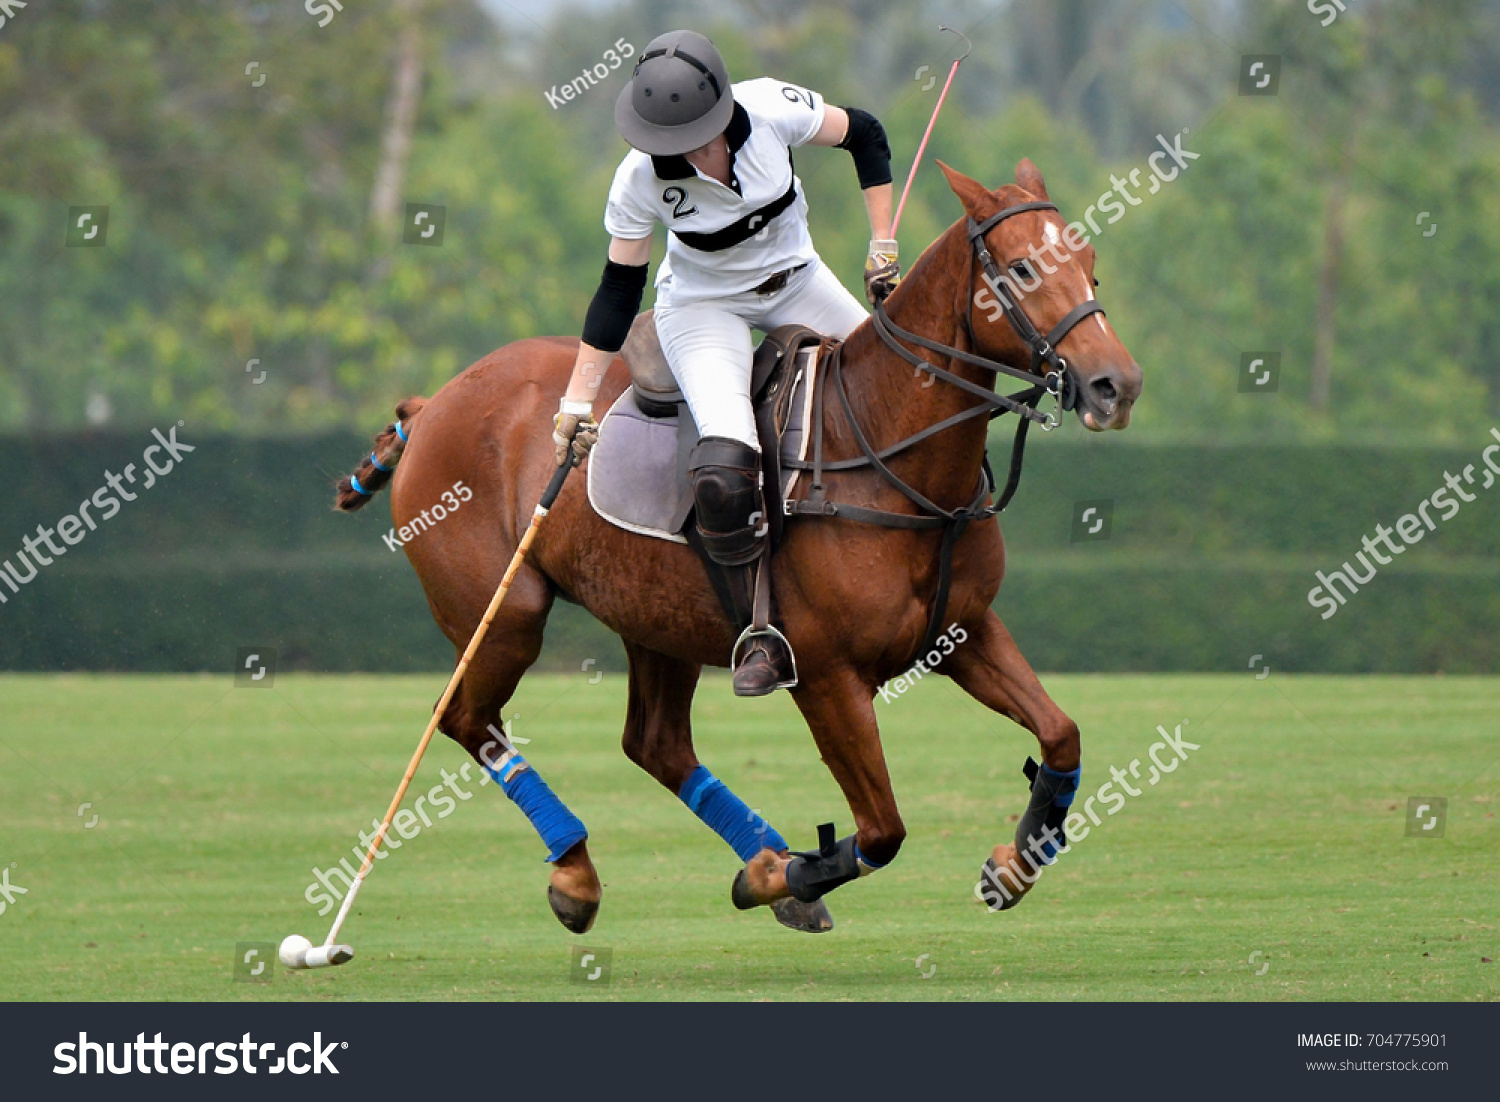 Woman Horse Polo Player Use Mallet Stock Photo 704775901